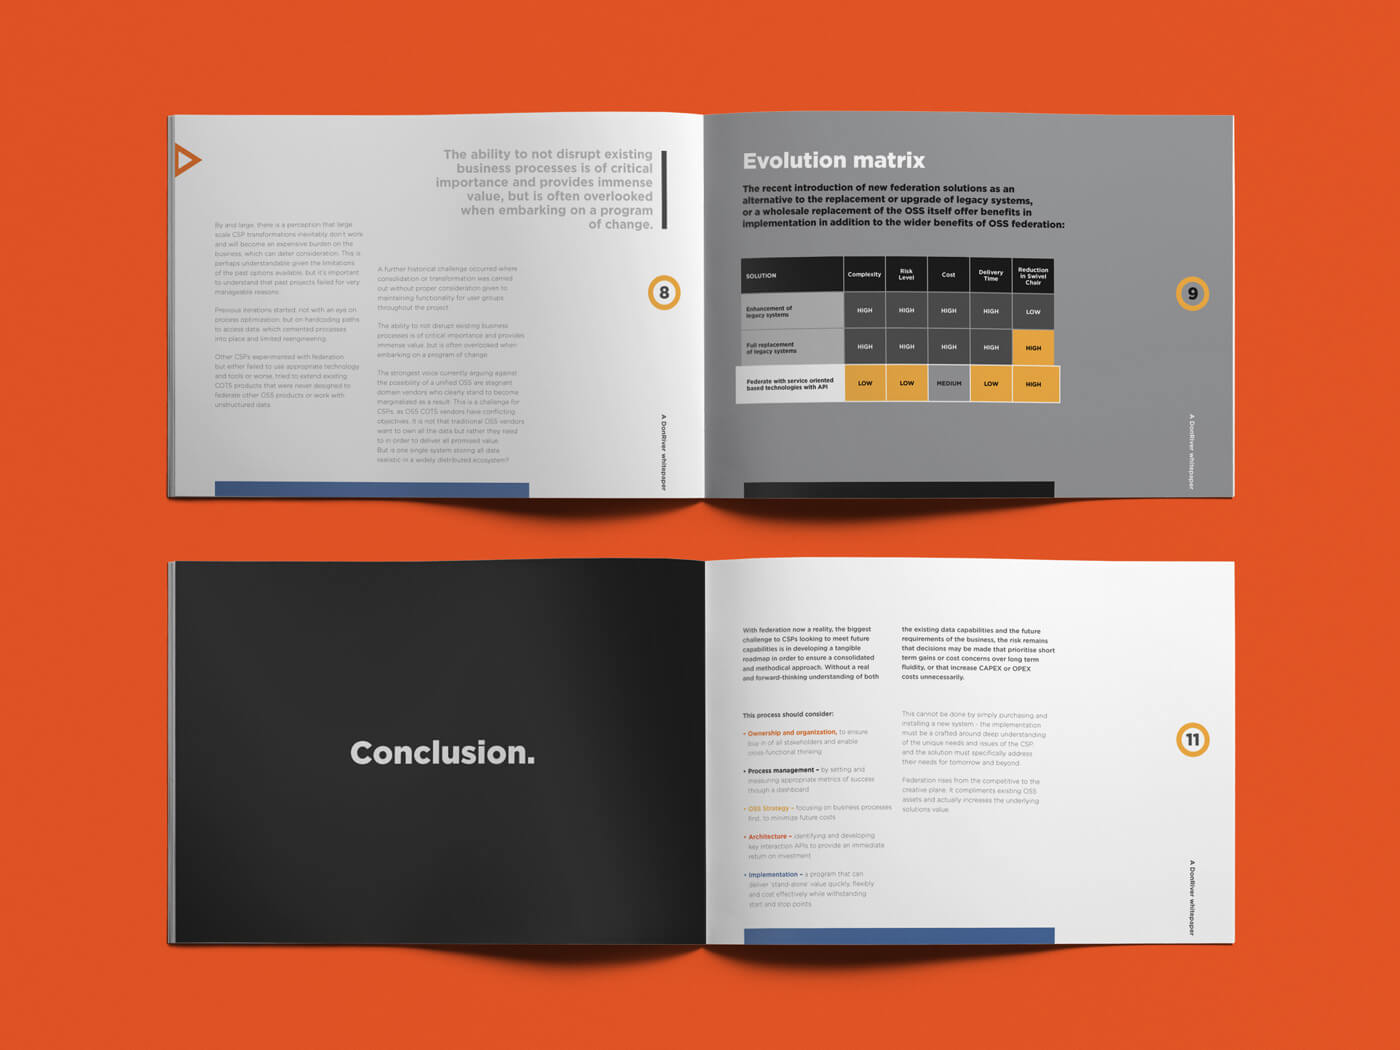 "DonRiver<strong>Brand positioning, video and content marketing campaign</strong><a href=""/case-studies/donriver-brand-positioning-and-content-marketing-campaign"">Read the case study →</a>"